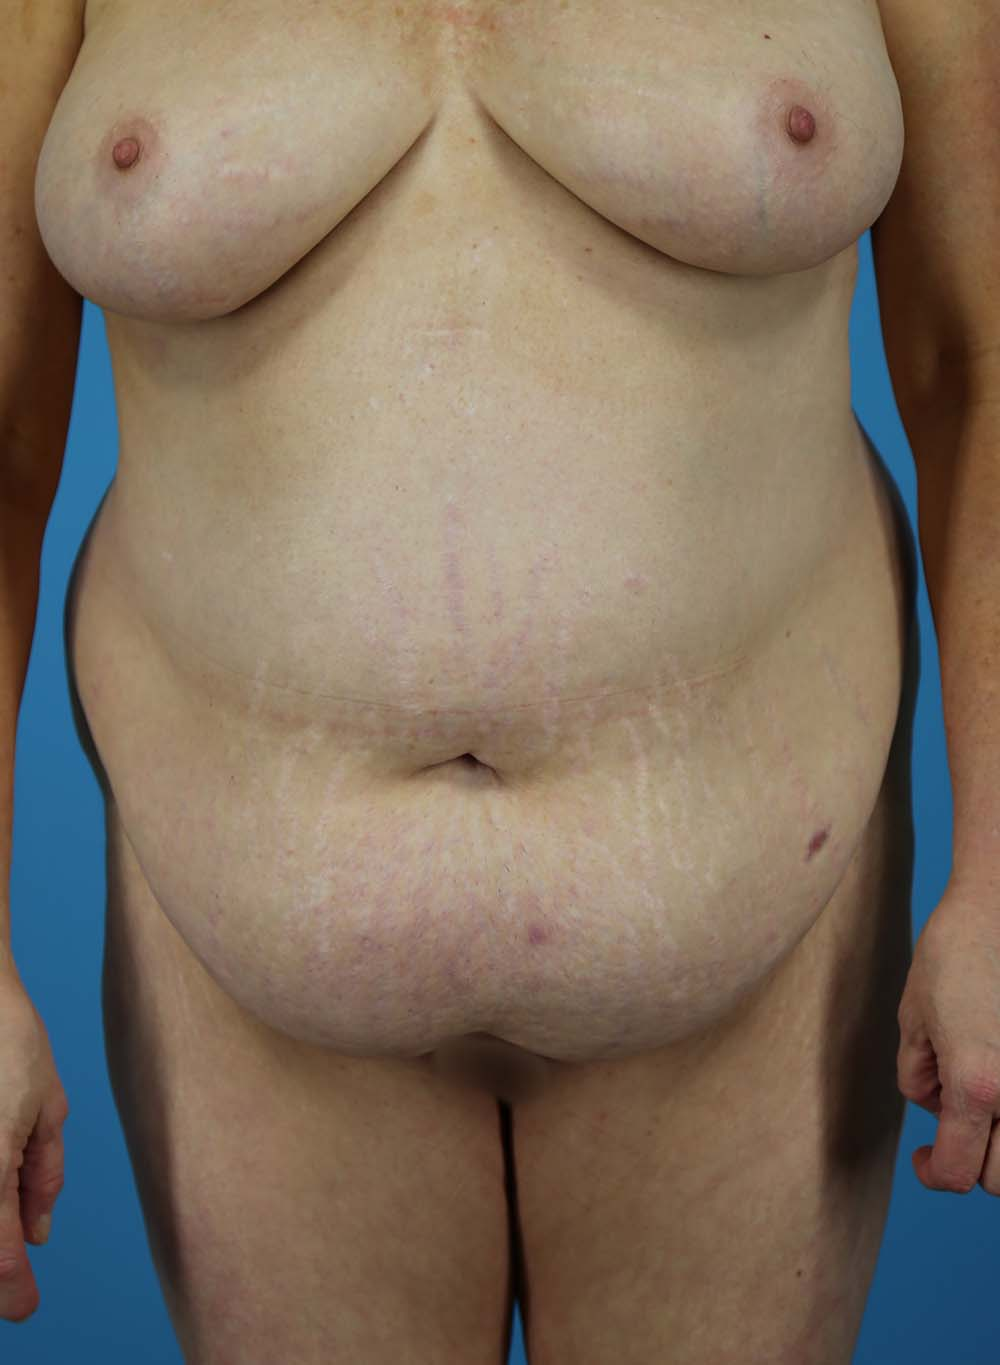 Liposuction Before and After | Dr Evan W Beale